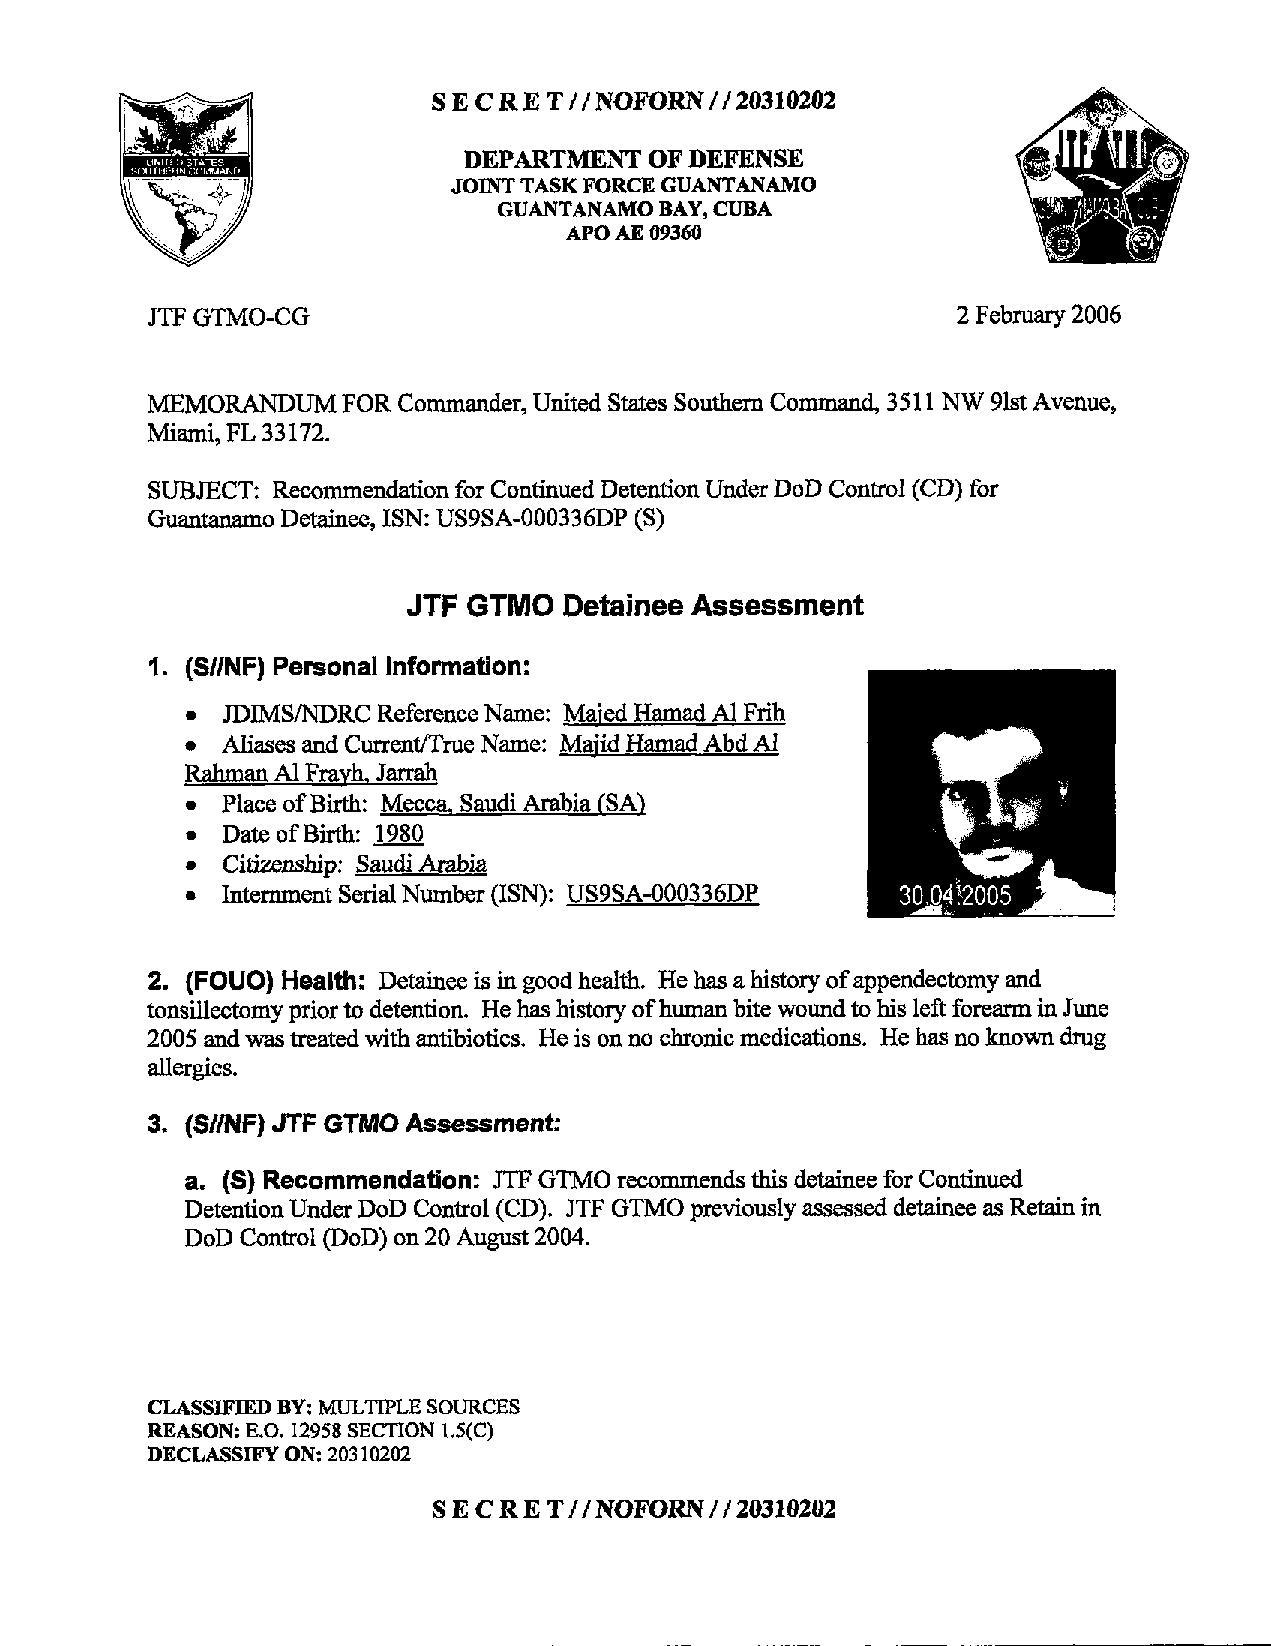 ISN 336's Guantanamo detainee assessment.pdf